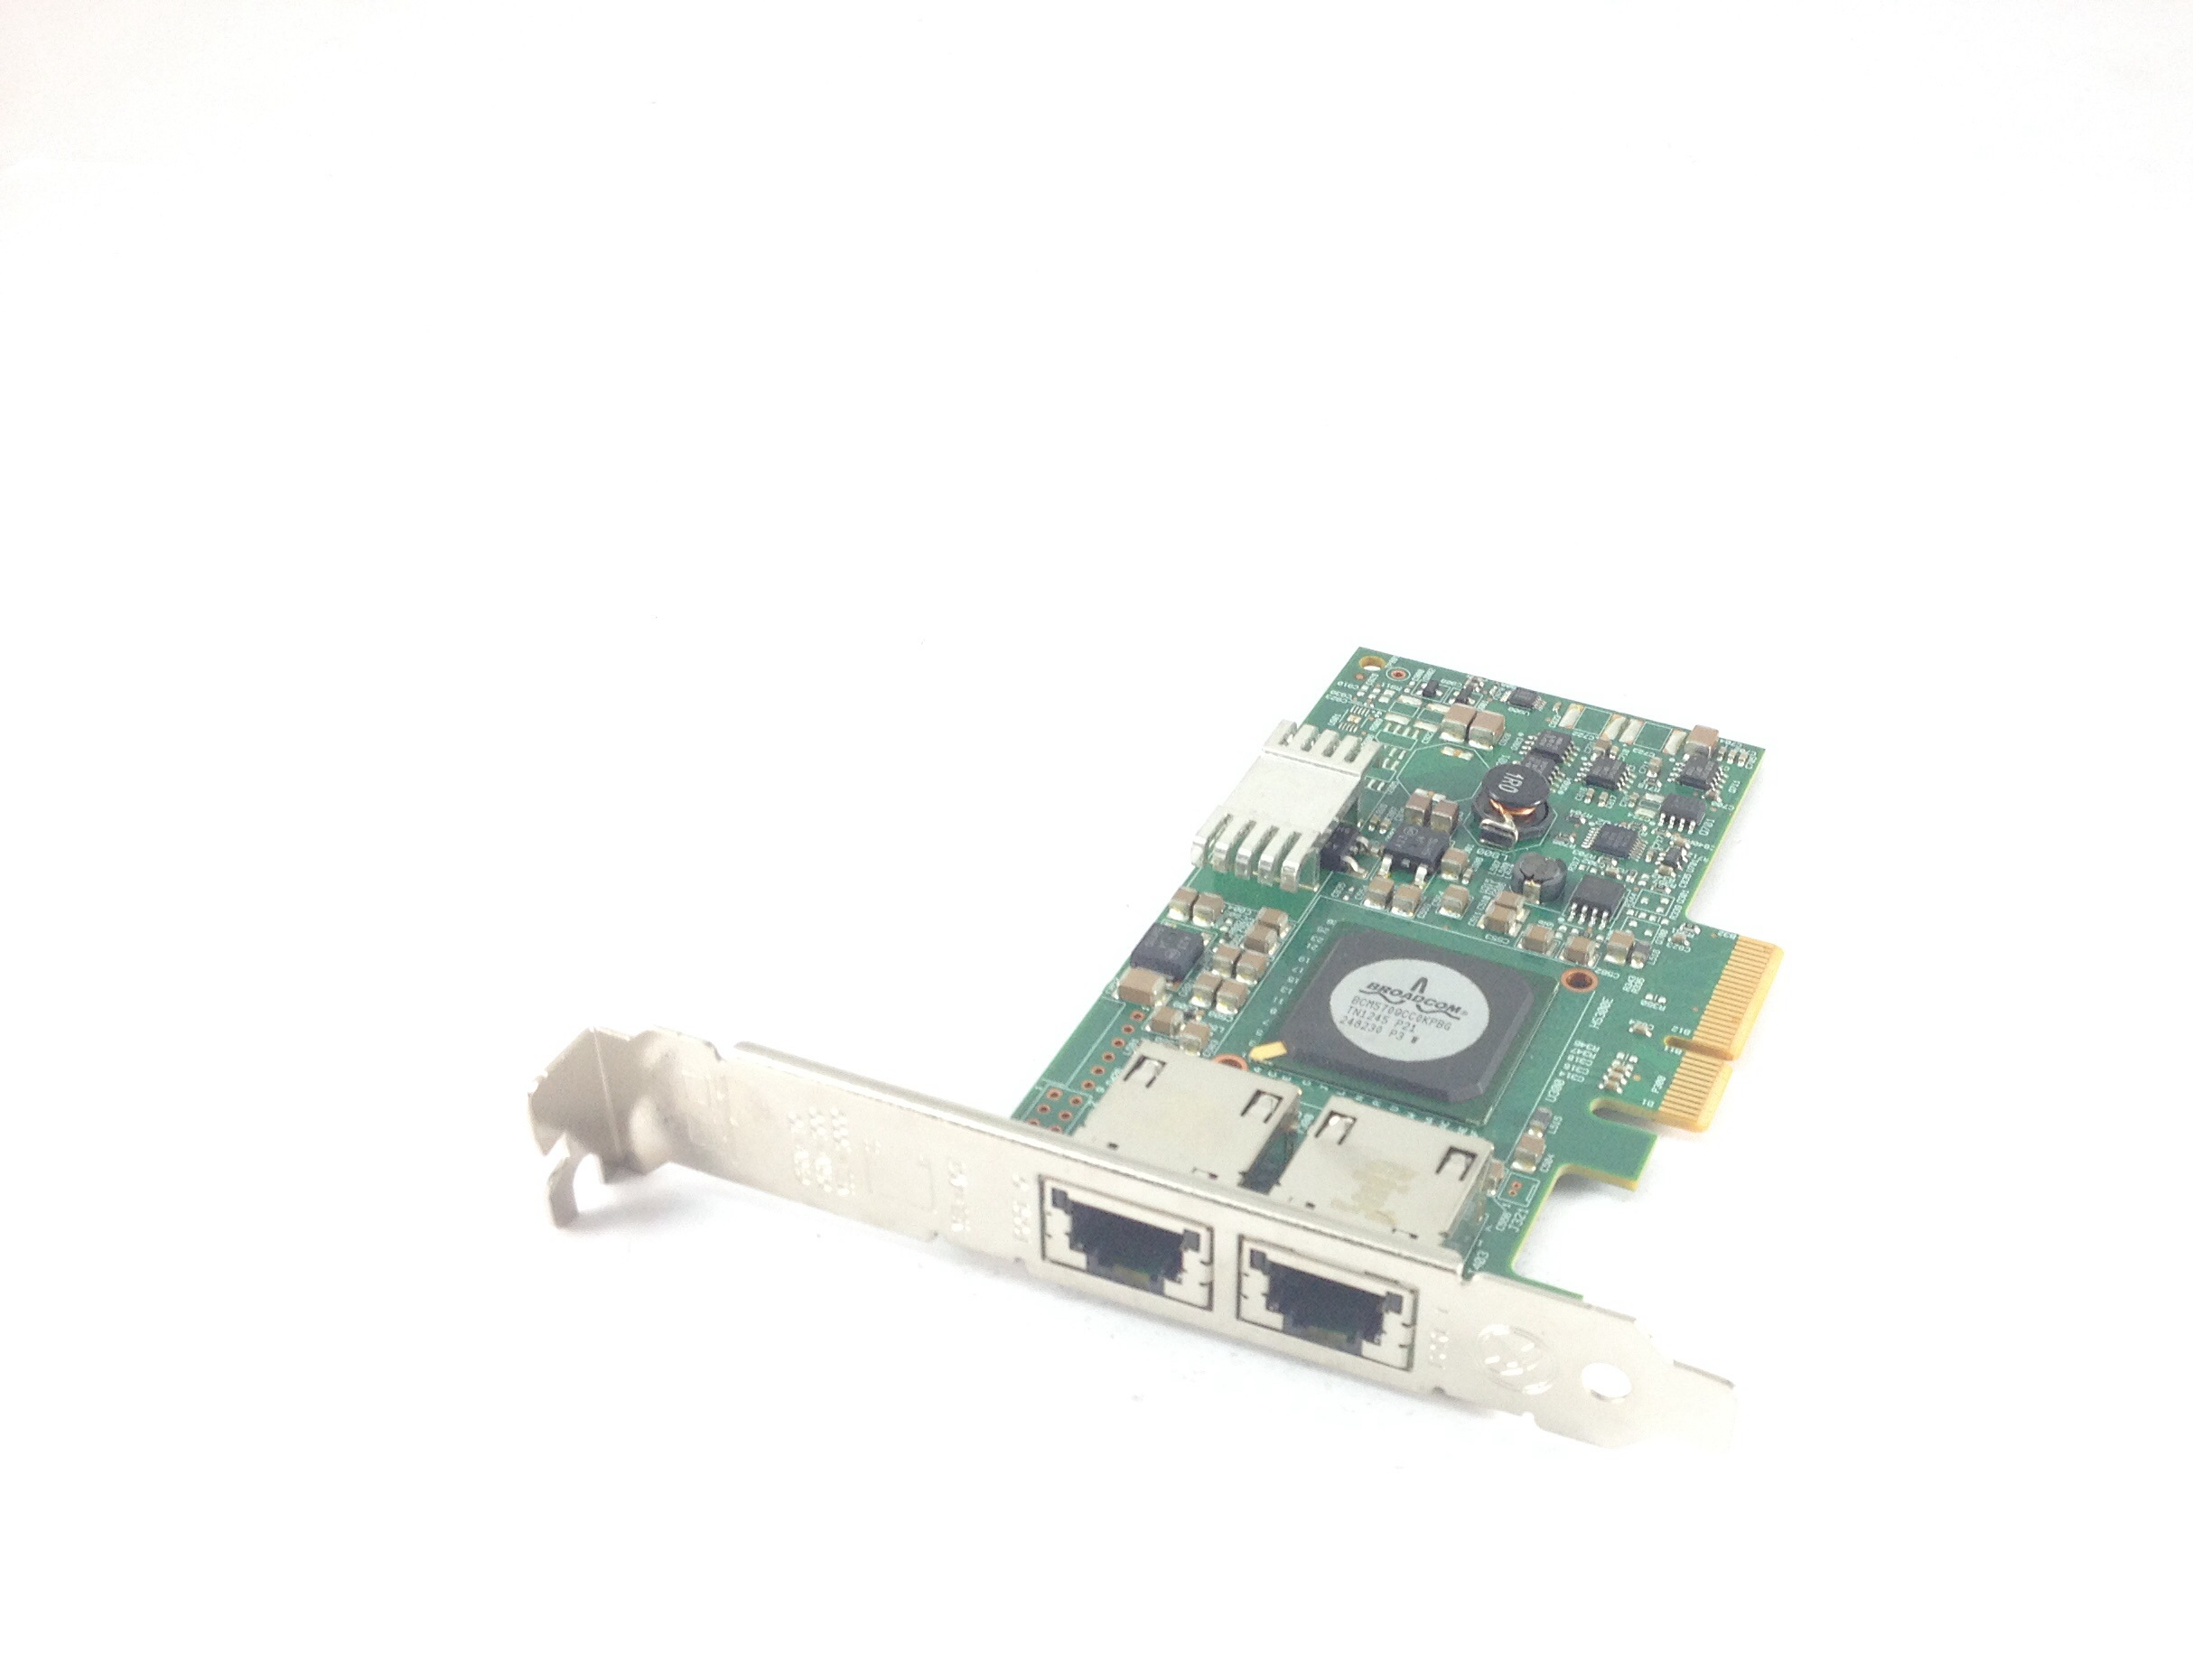 IBM Broadcom 5709 Dual Gigabit Ethernet Adapter PCI-E Network Card (49Y7947)